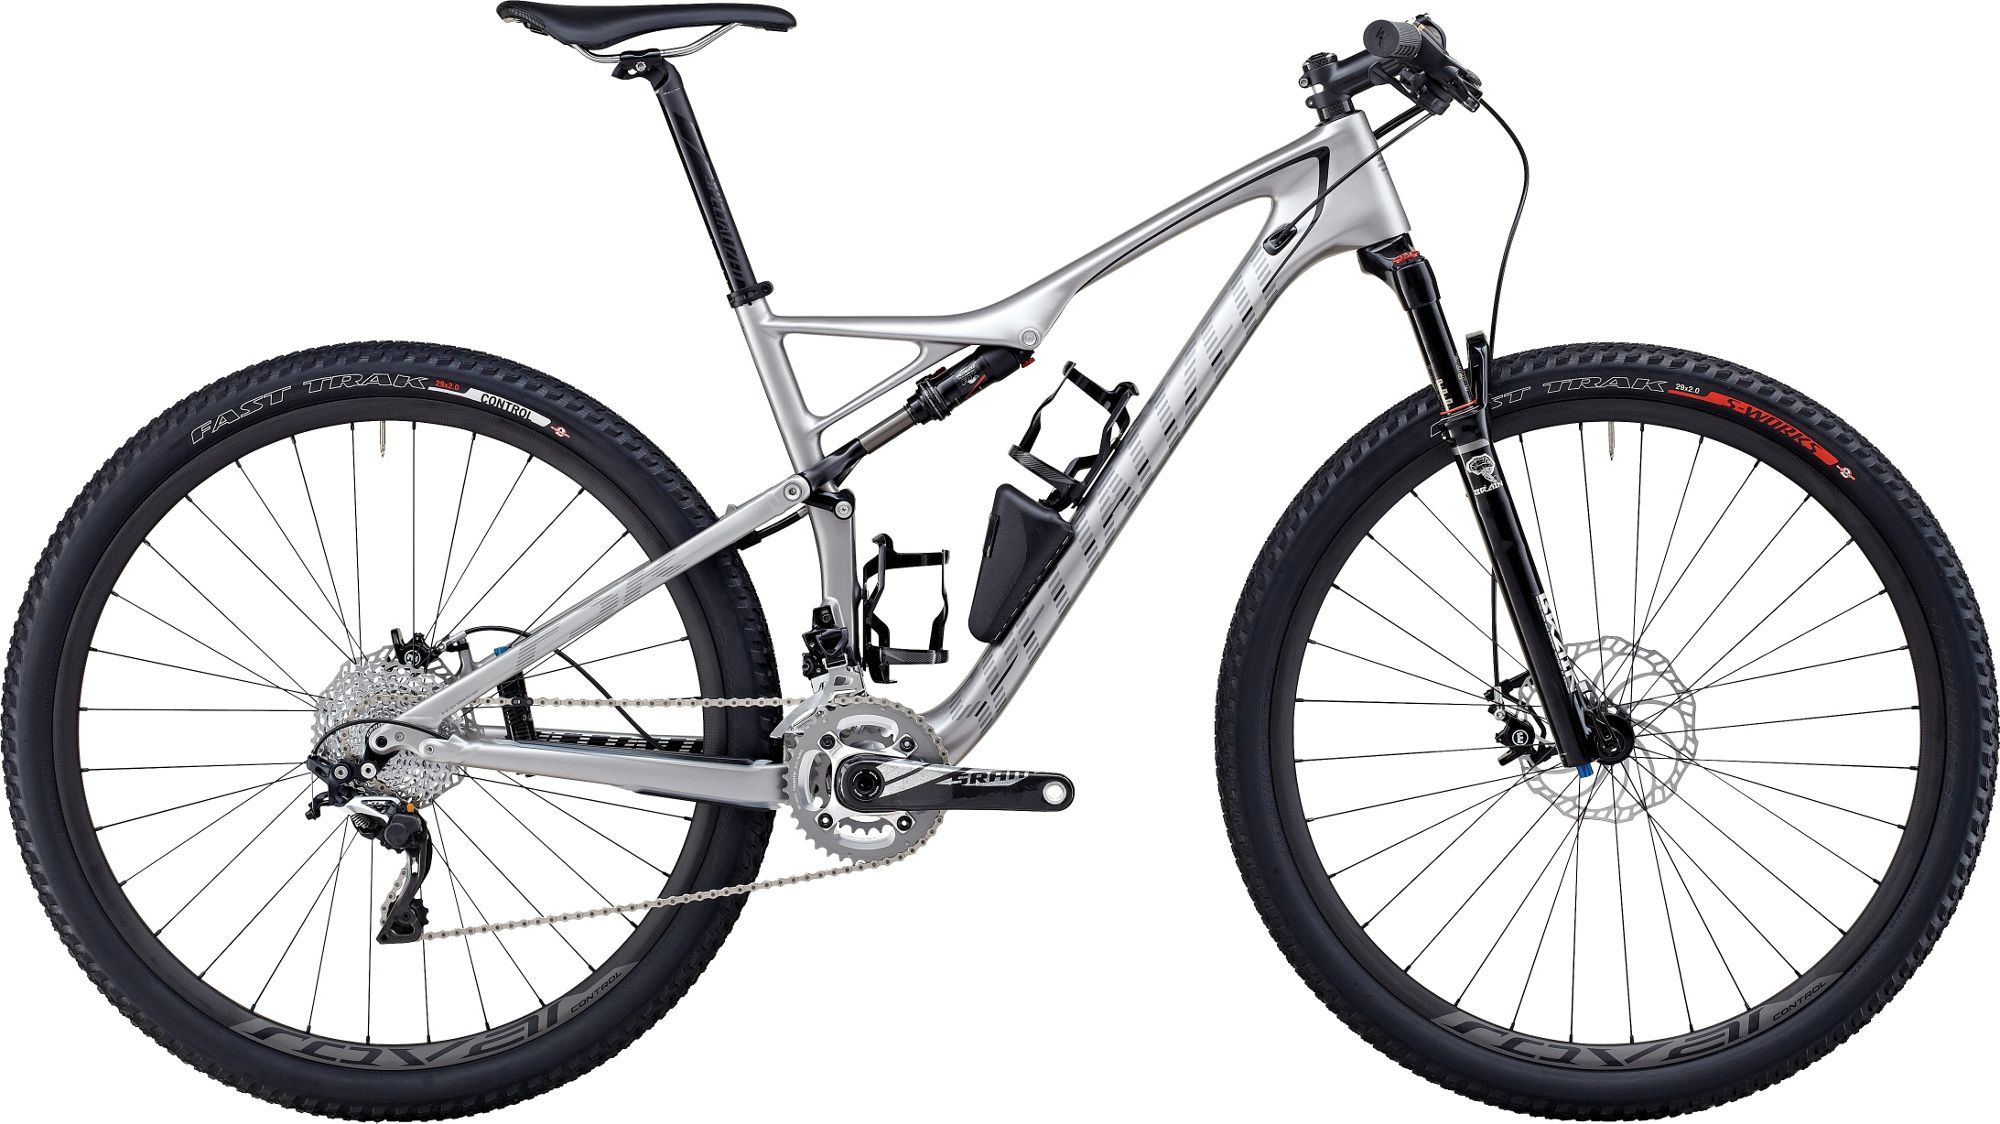 Specialized Epic Expert Carbon 2014–2015 review - The Bike List